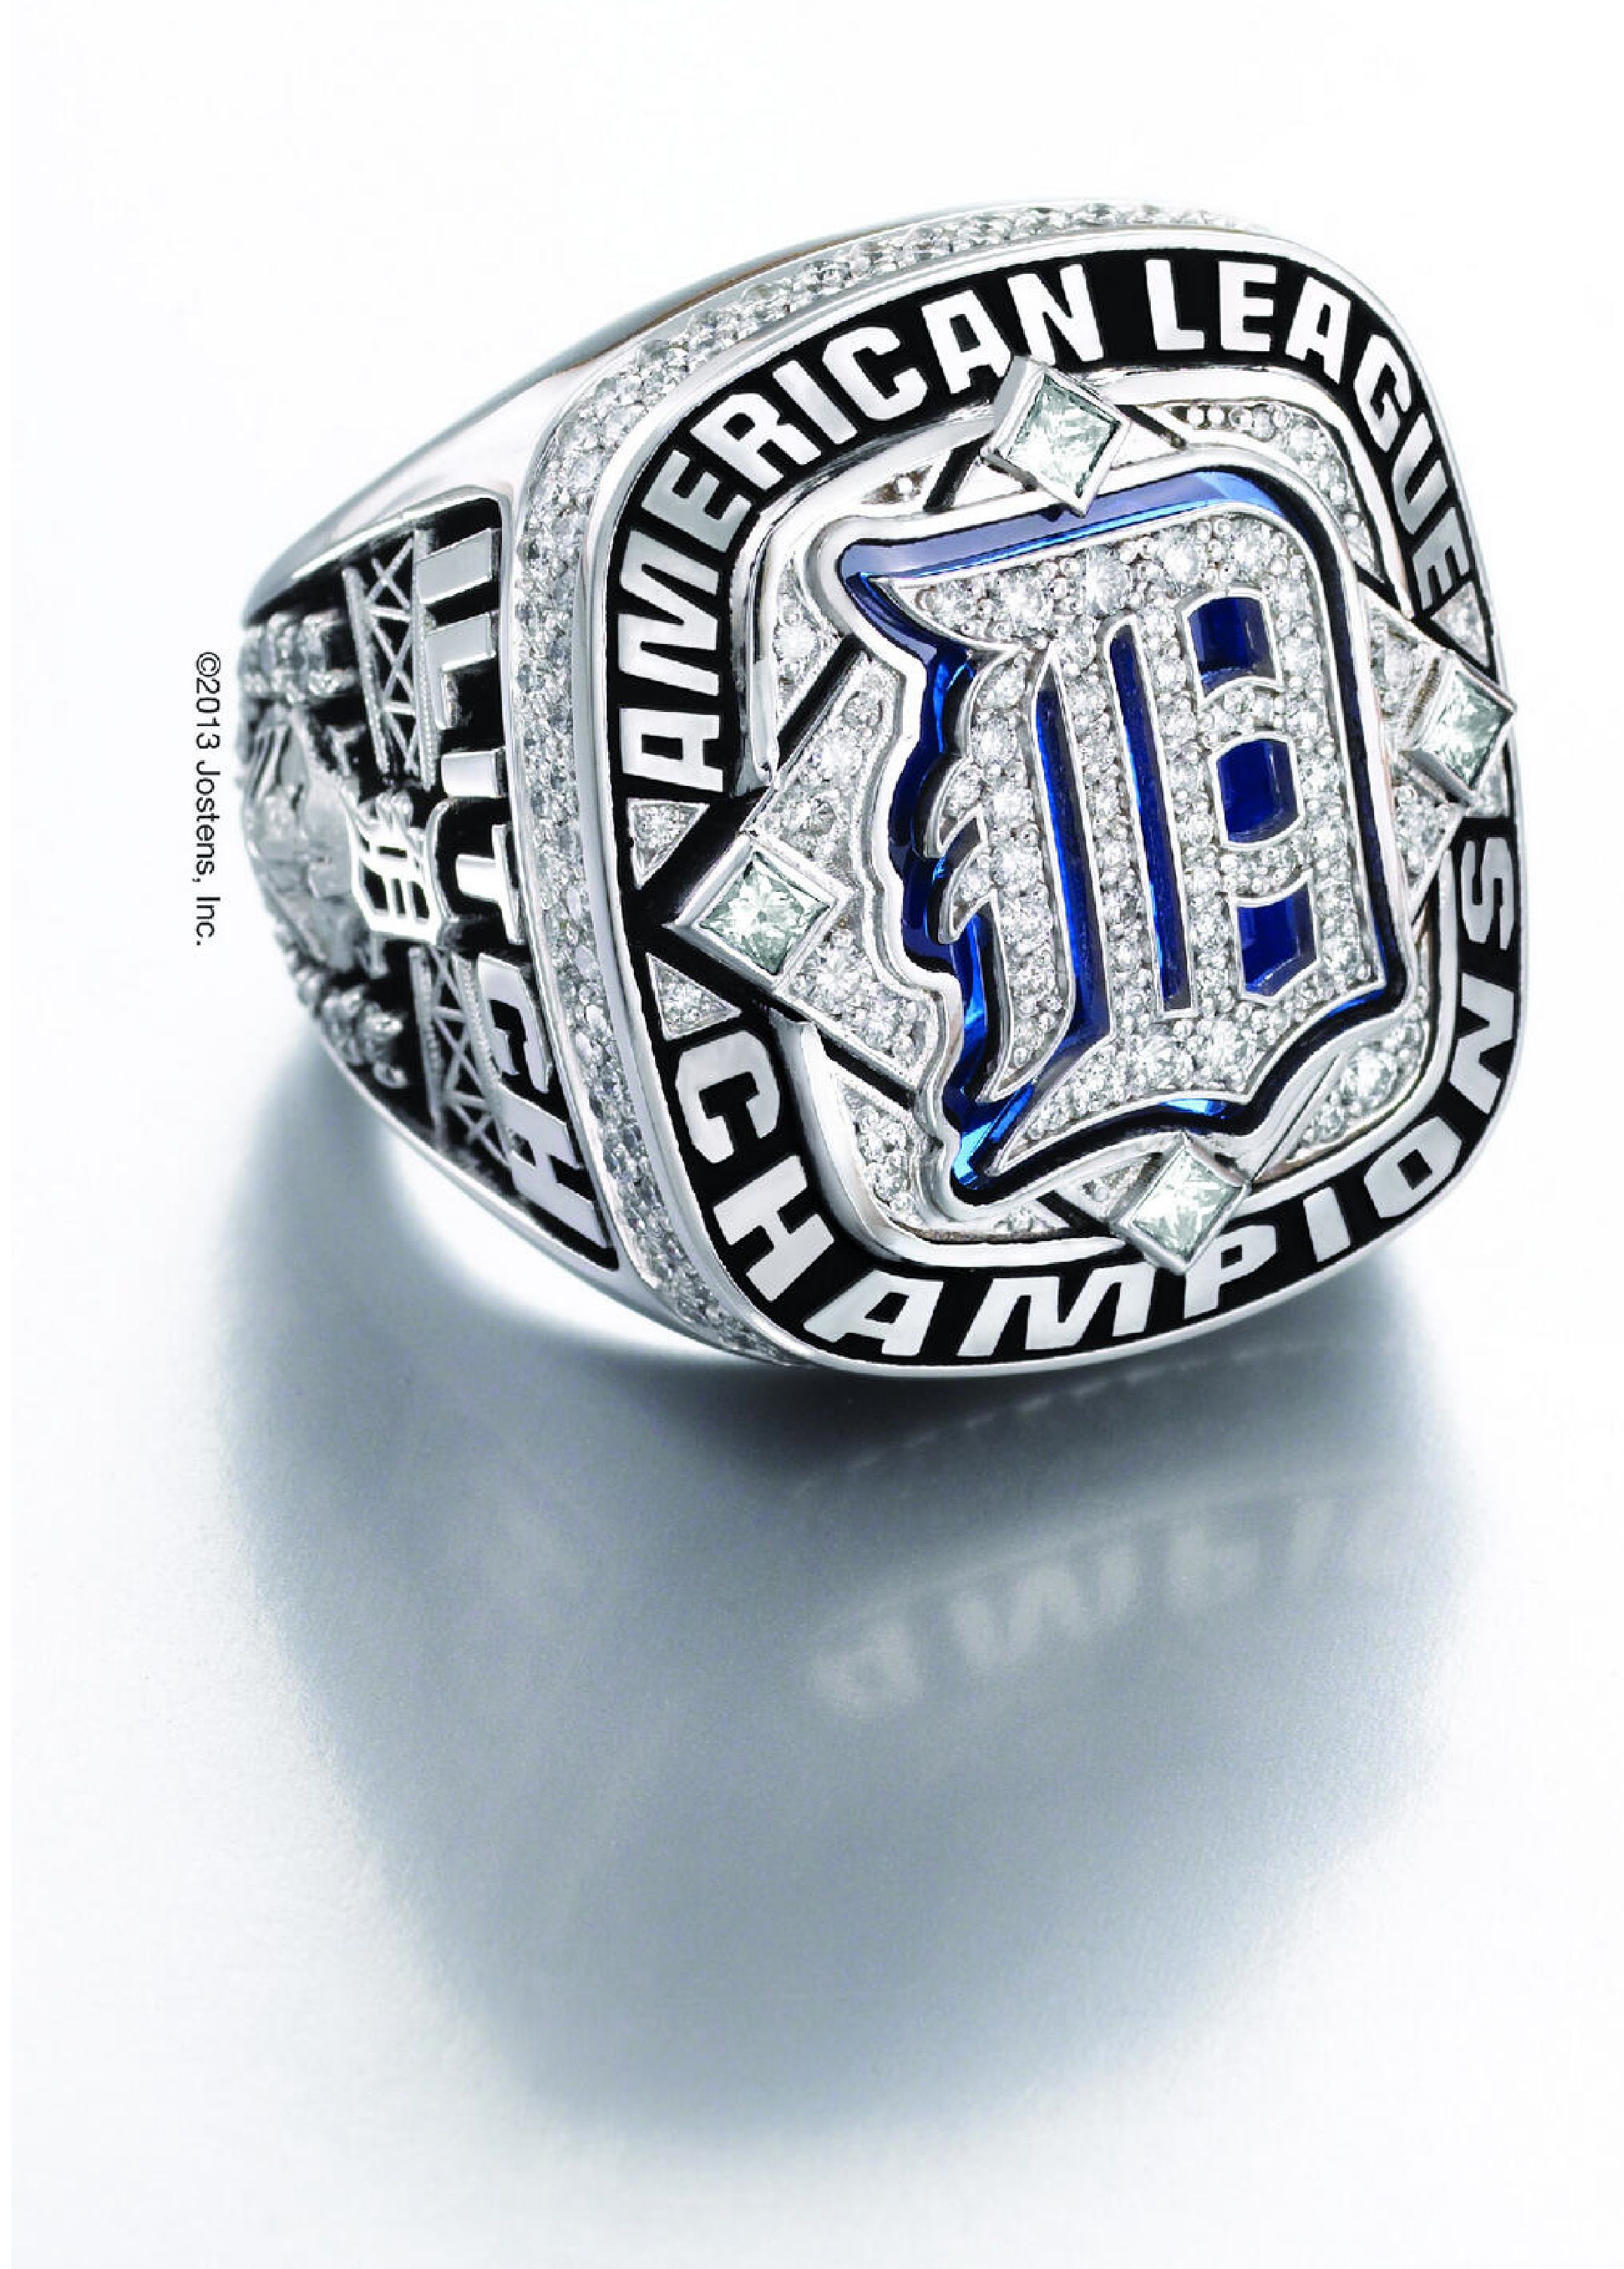 ring detroit tigers mlb rings american sport pin championship league